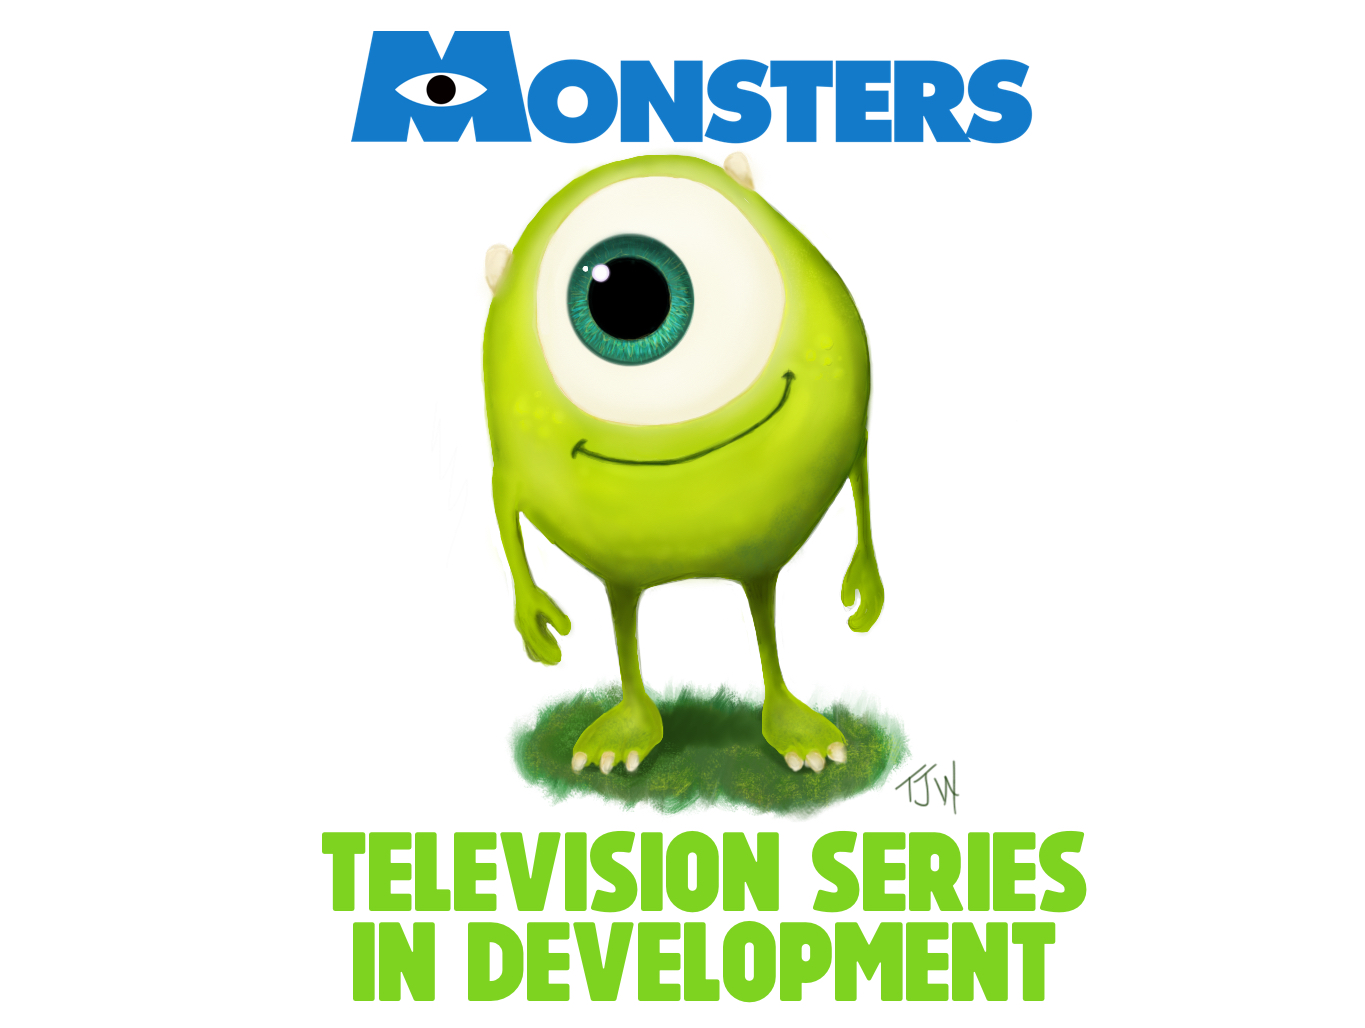 Pixar-Post-Monsters-Television-Show-In-Development.jpg